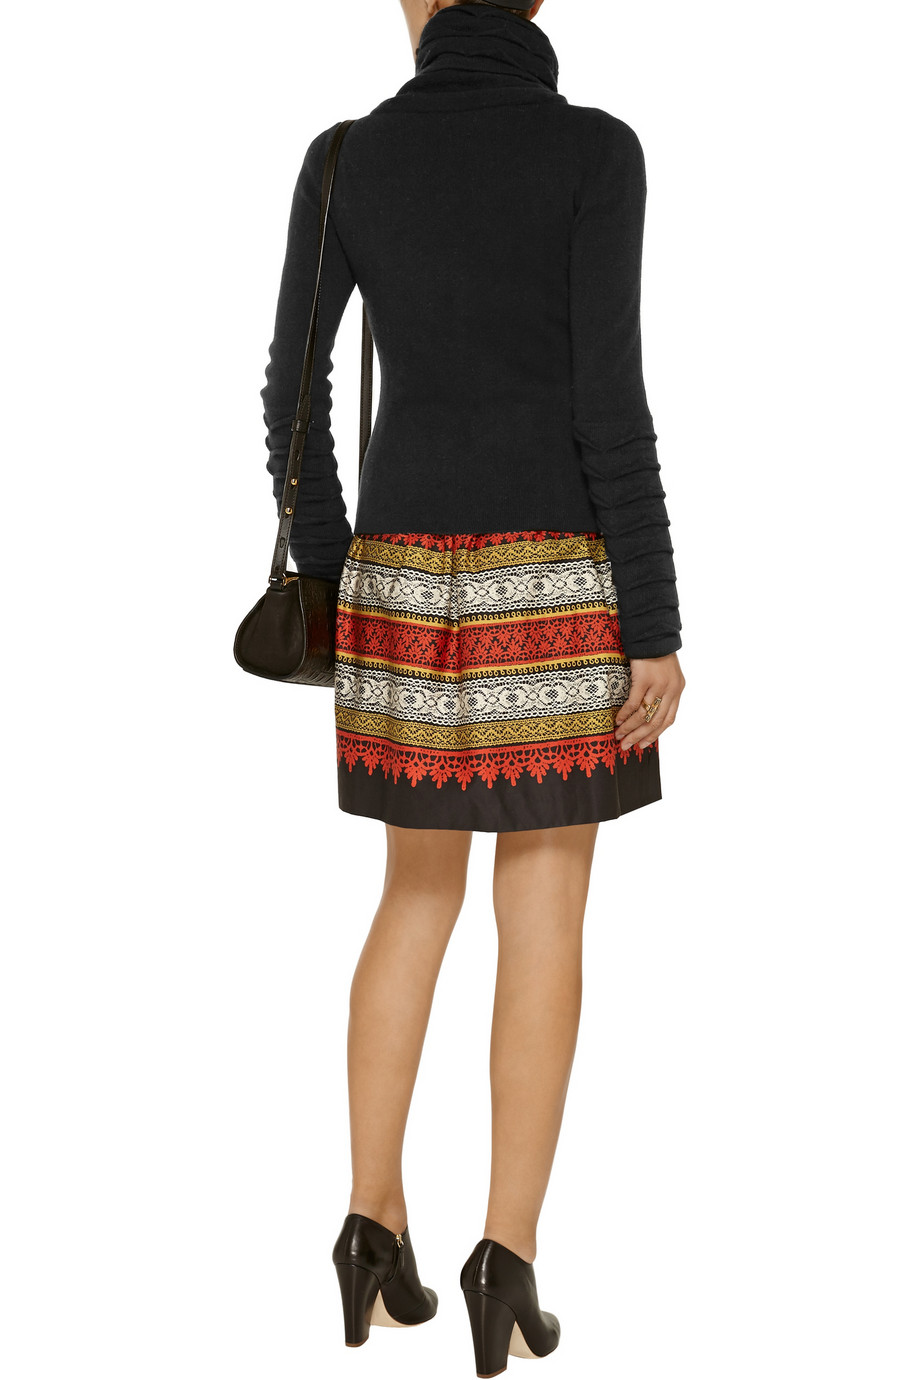 Temperley london textured wool turtleneck sweater – 0% at the outnet.com